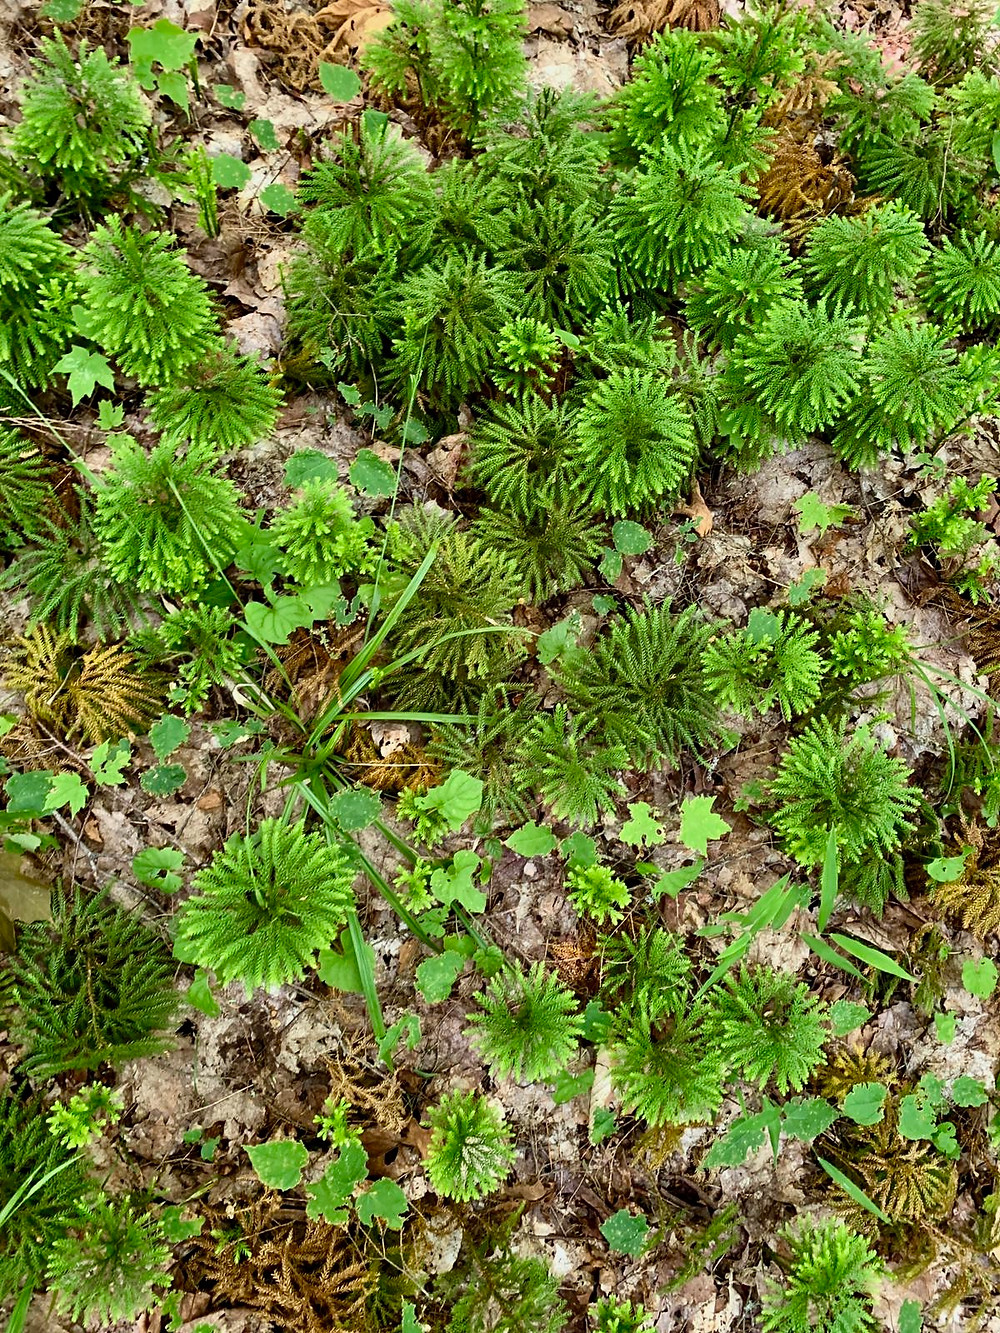 Small coniferous trees on the ground